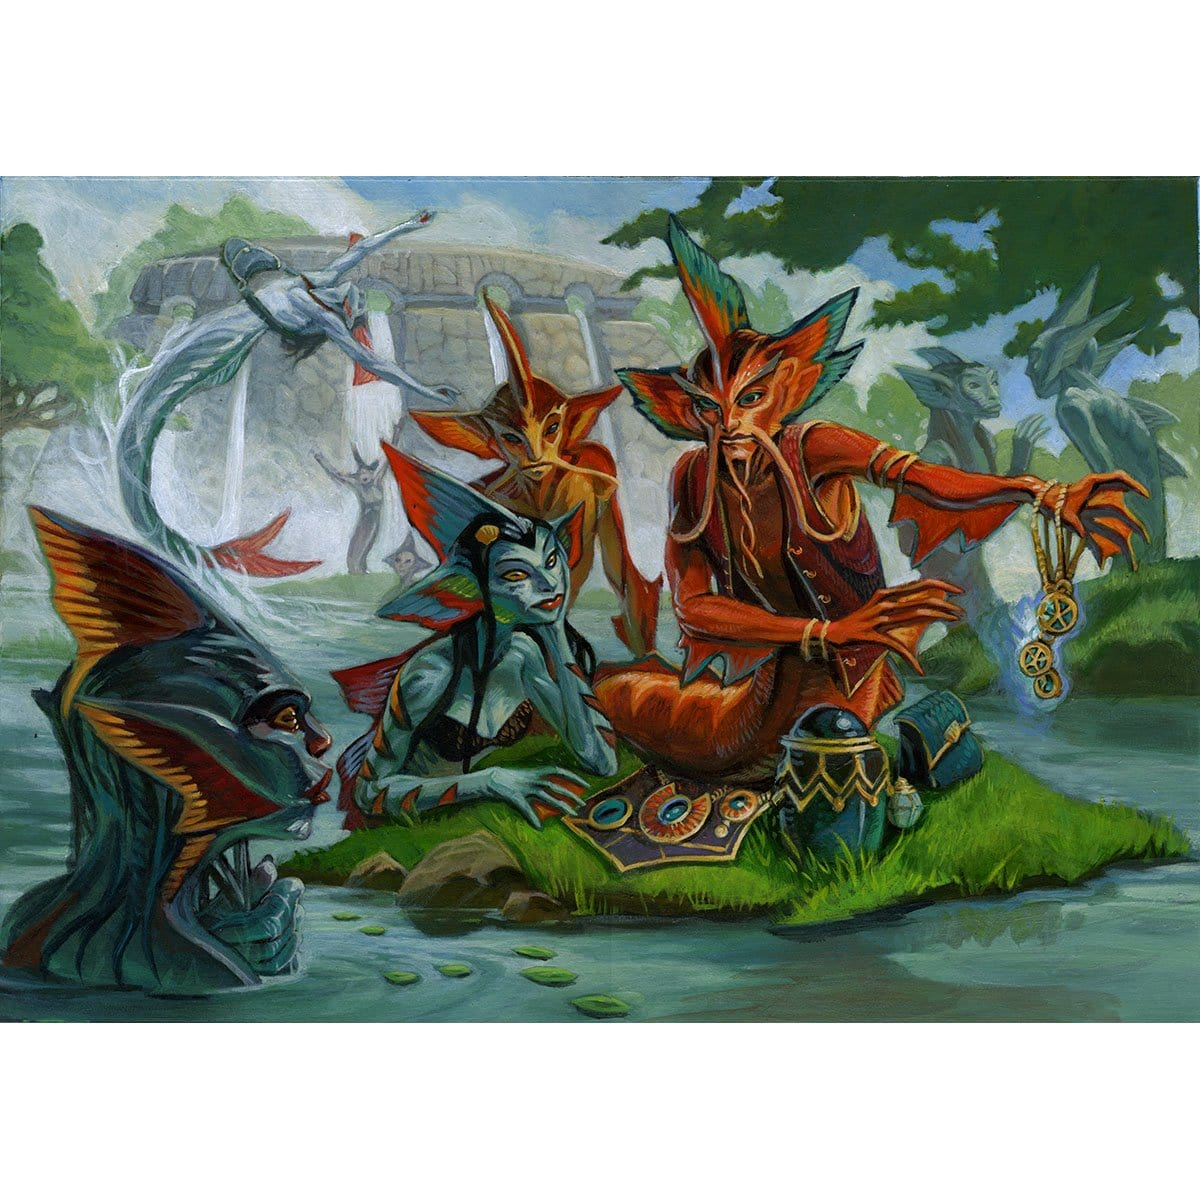 Merrow Commerce Print - Print - Original Magic Art - Accessories for Magic the Gathering and other card games